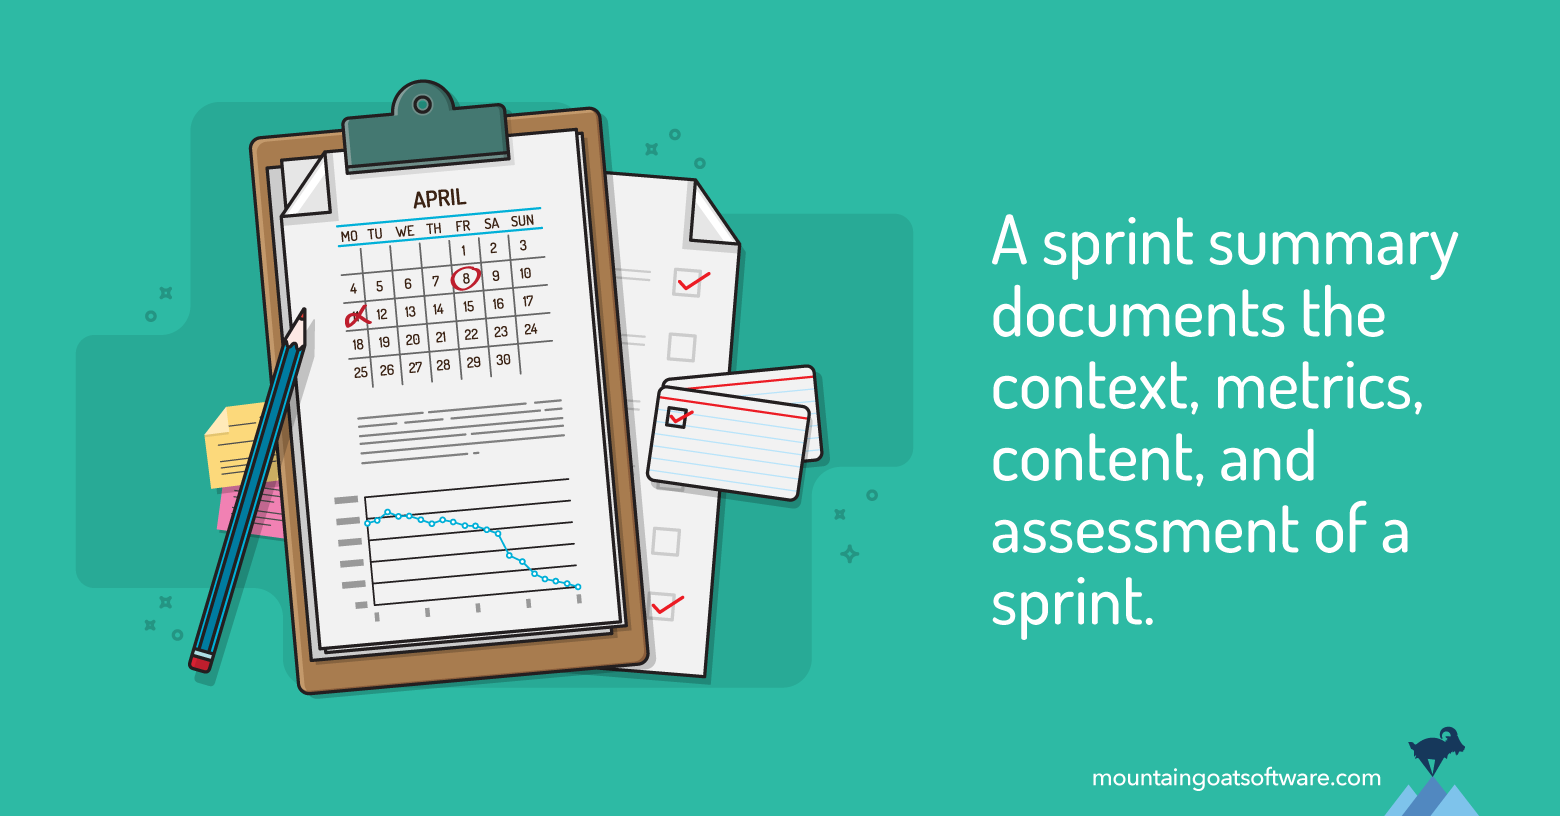 Summarizing the Results of a Sprint